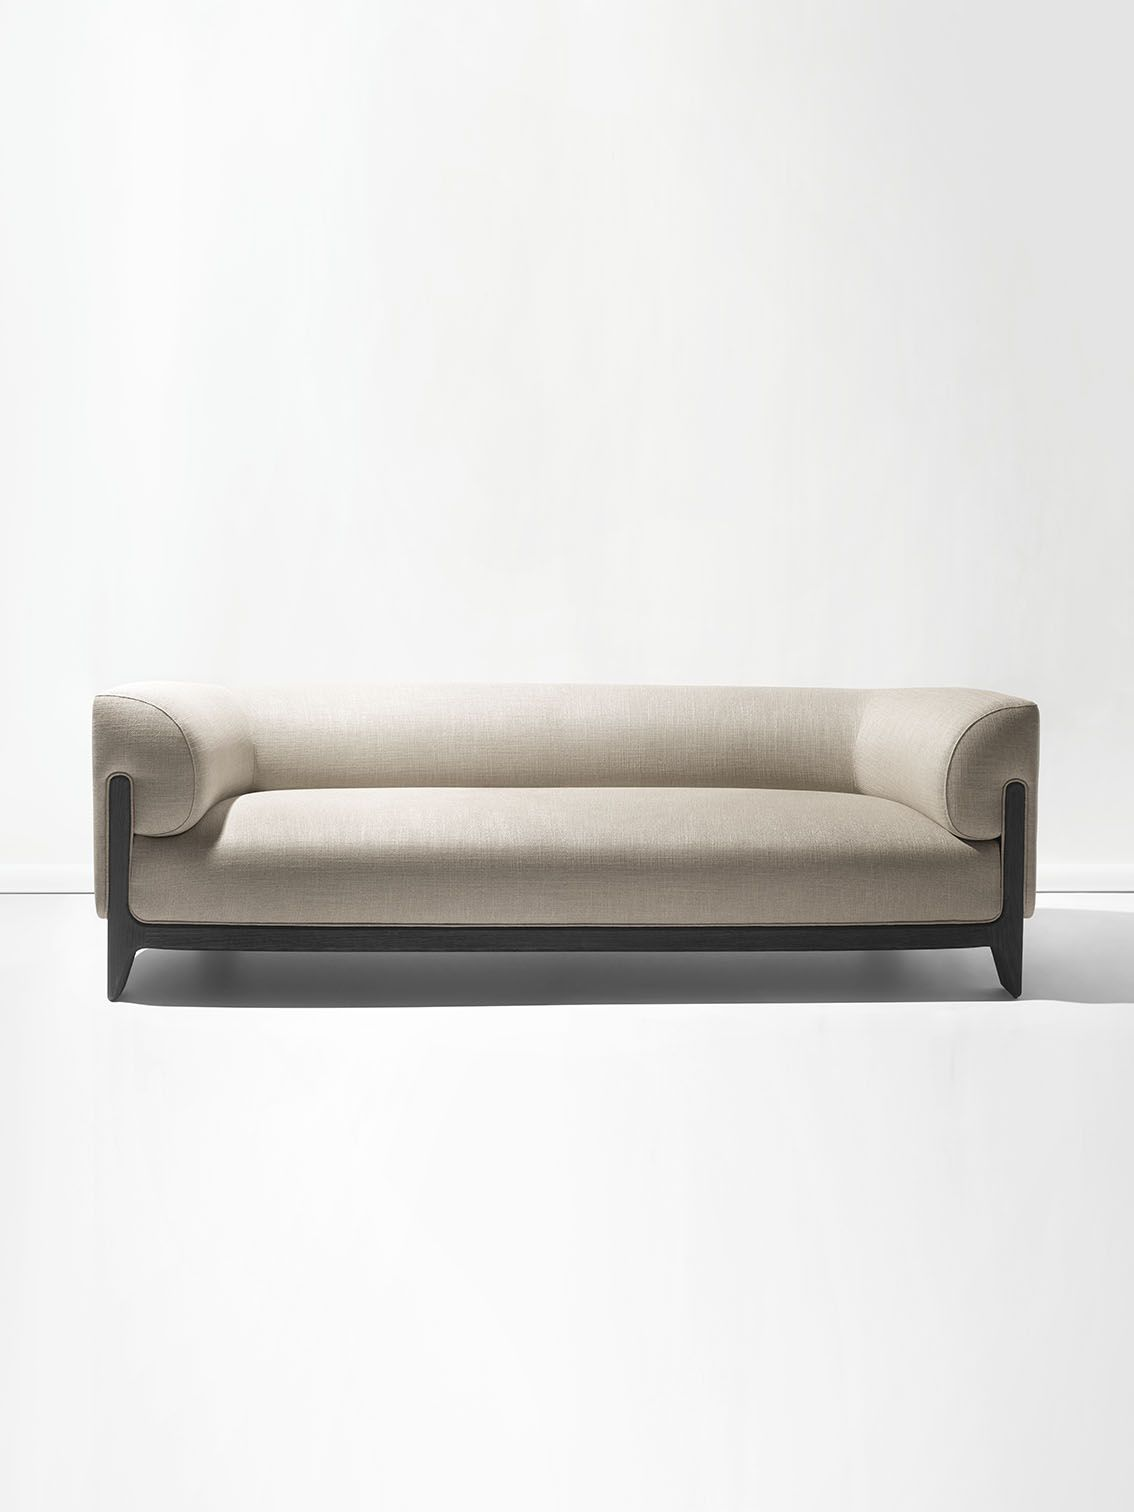 Canapé Sofa Bob Forest Giaconia Edited By Delcourt Collection Canape Sofa Furniture Designer Forest